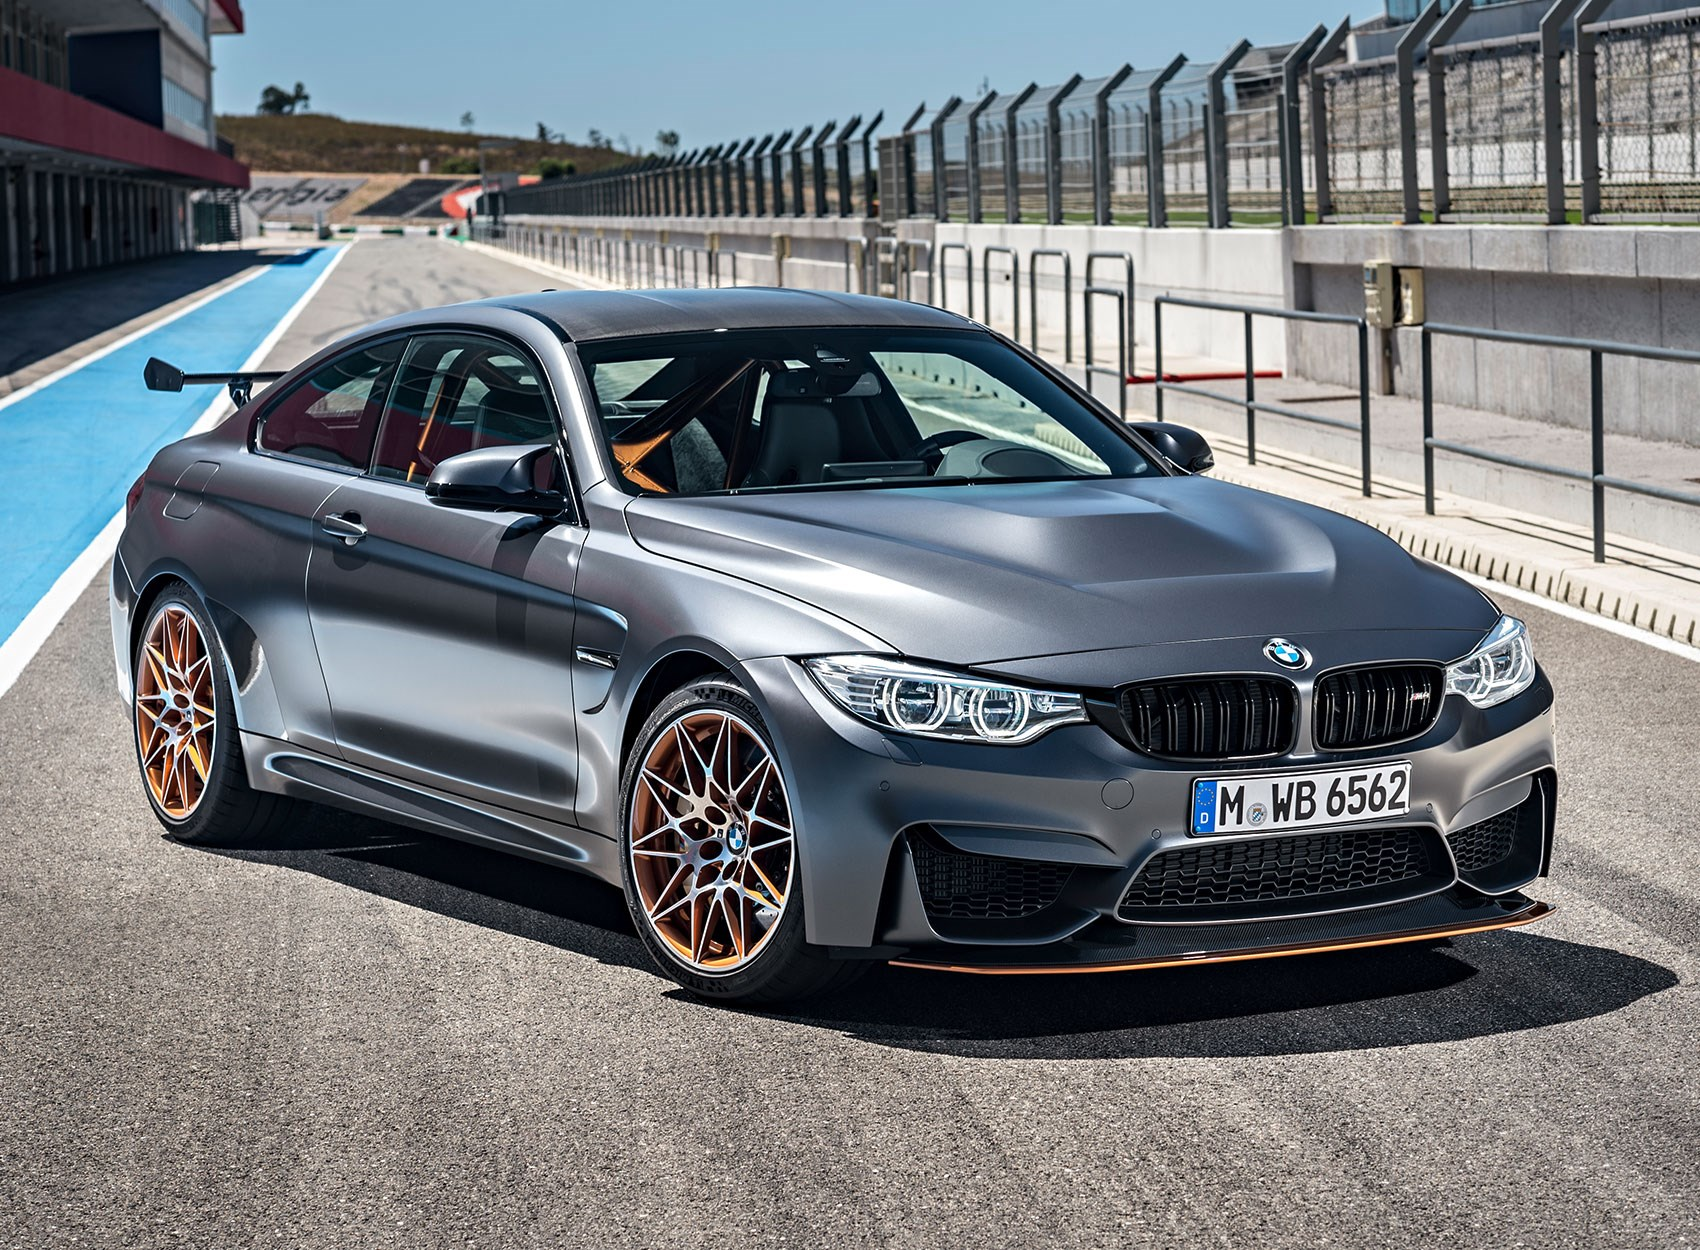 BMW M4 GTS 2016: officially the fastest BMW road car ever by CAR